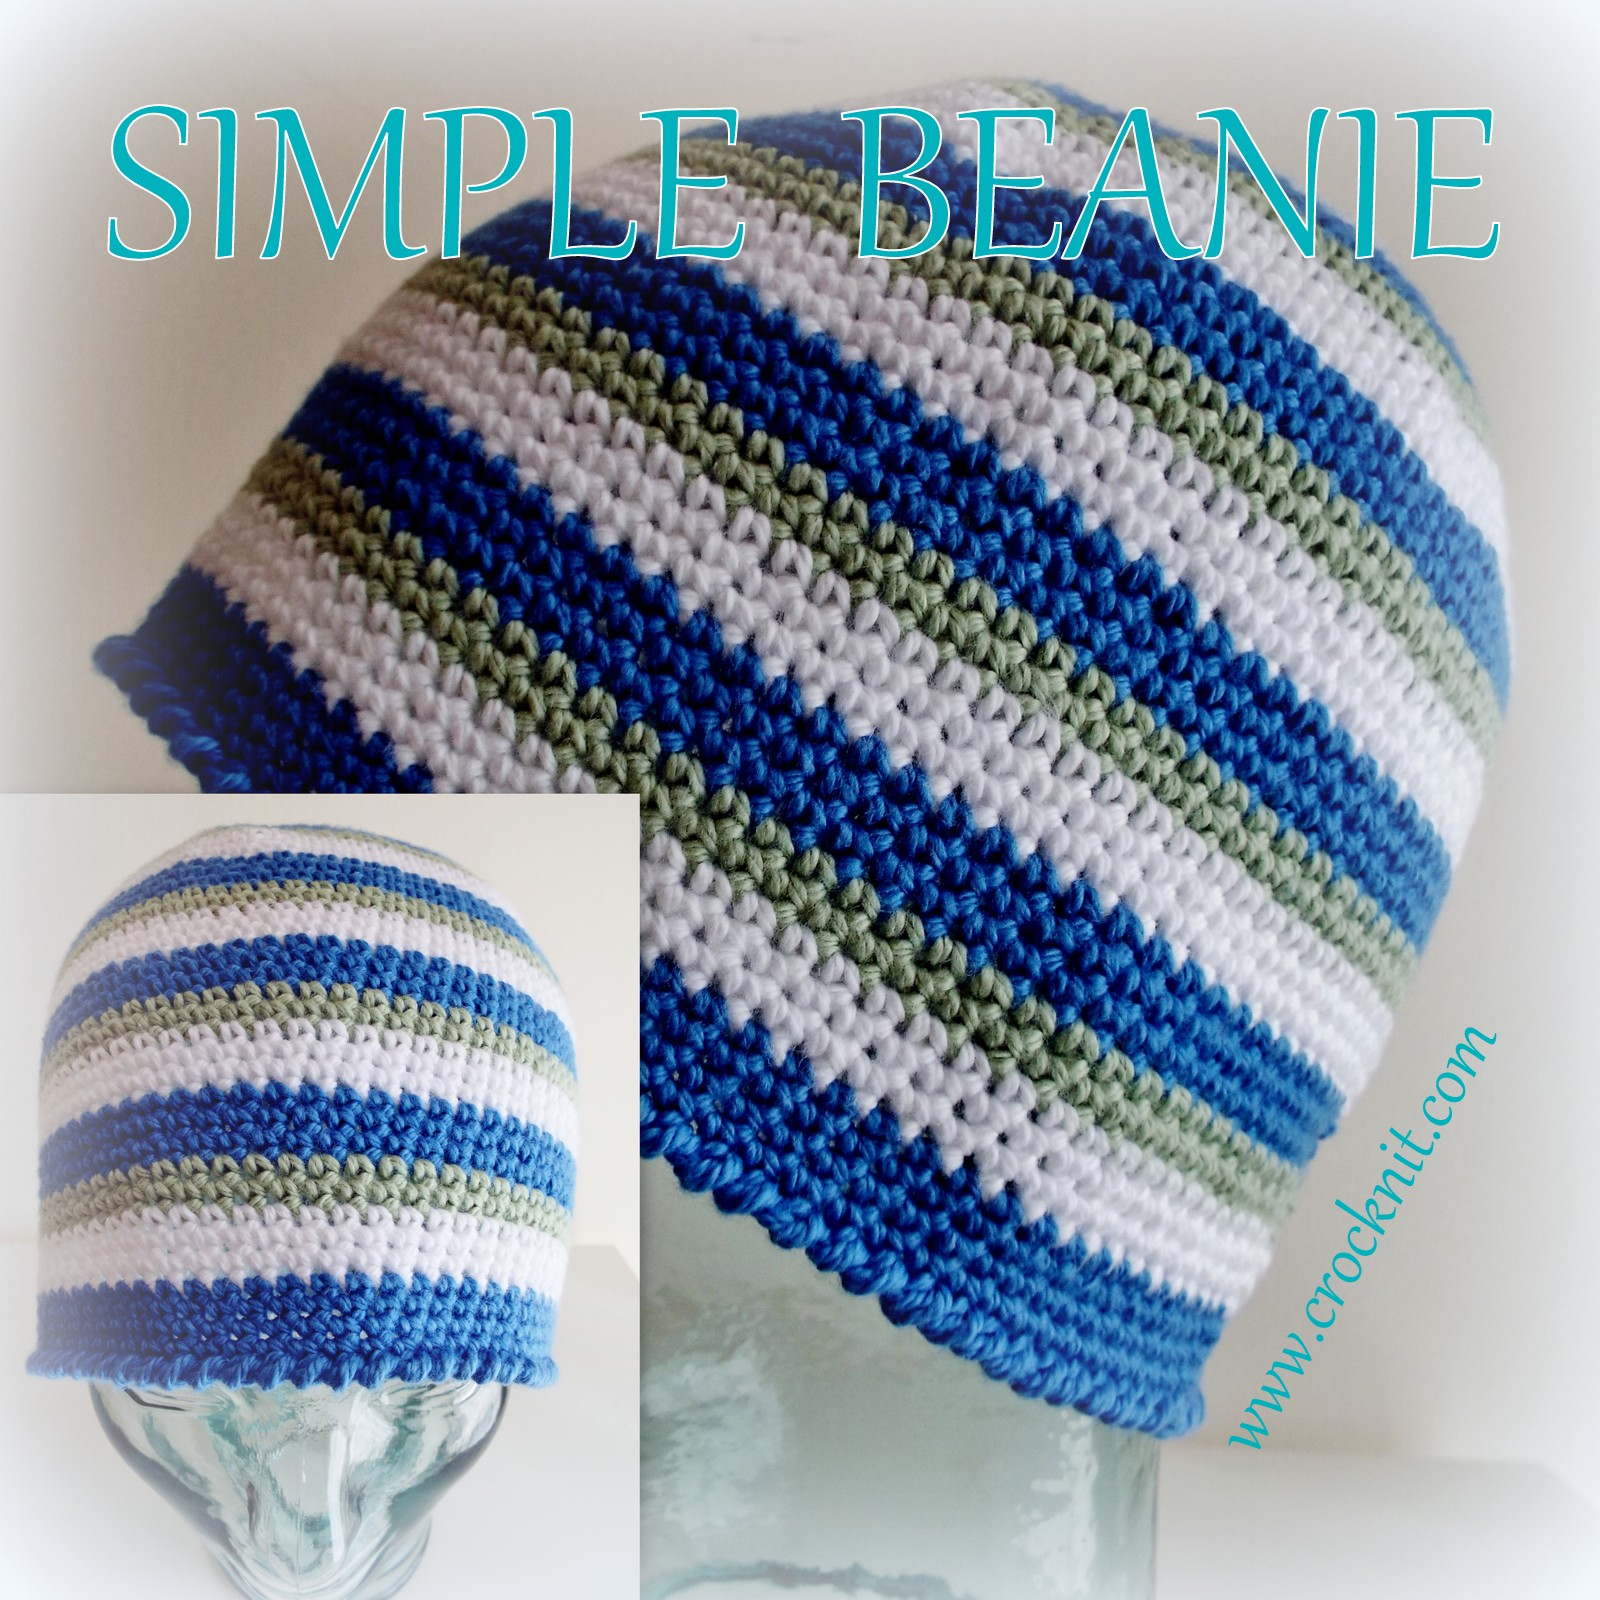 MICROCKNIT CREATIONS: How to Crochet a Simple Beanie